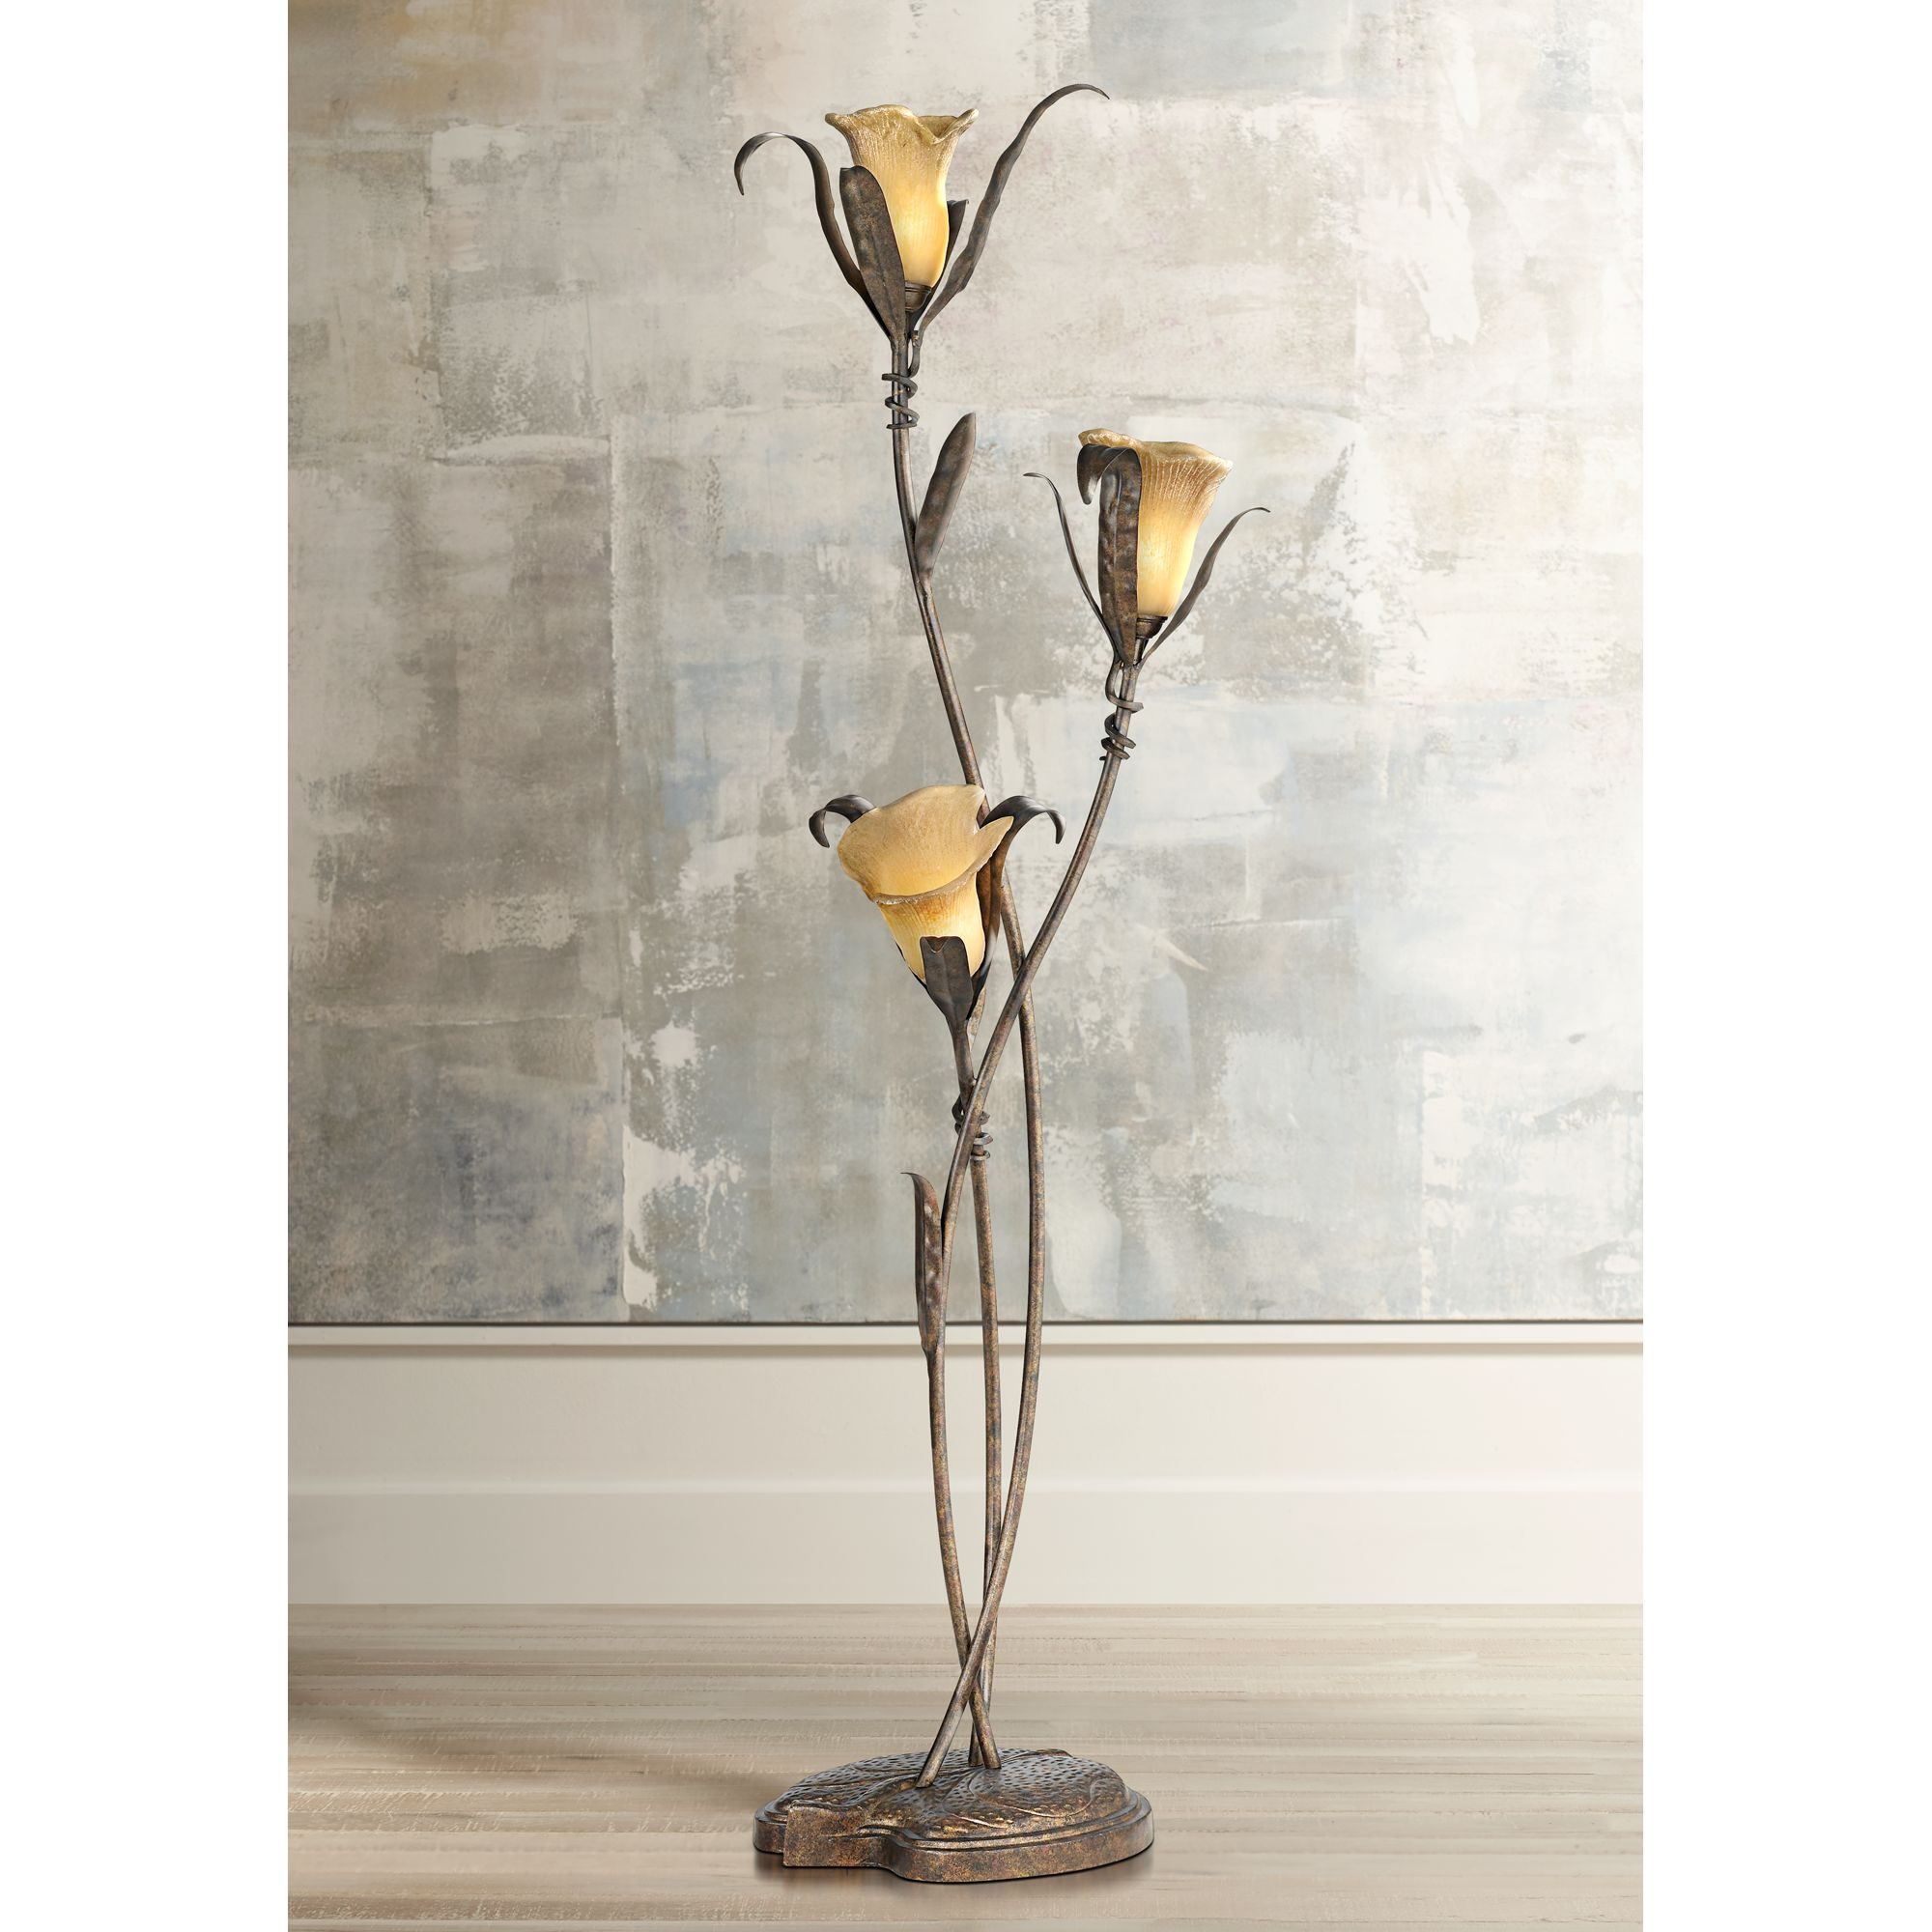 Charmant Franklin Iron Works Artistic Floor Lamp Bronze And Gold Lily Shaped Amber  Glass Flower Lights For Living Room Bedroom Uplight